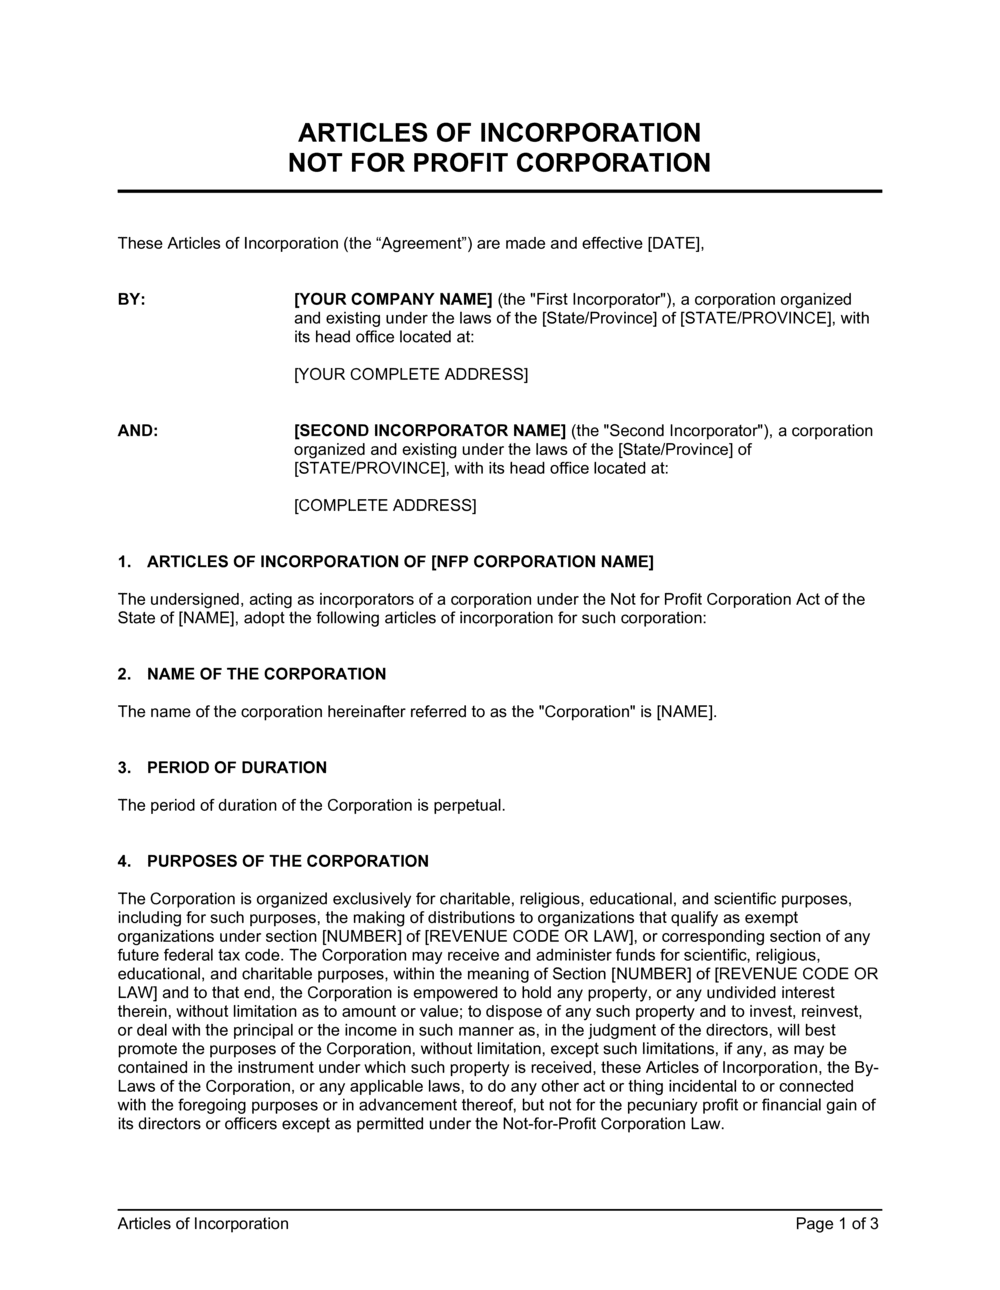 Business-in-a-Box's Articles of Incorporation Not for Profit Organization Template